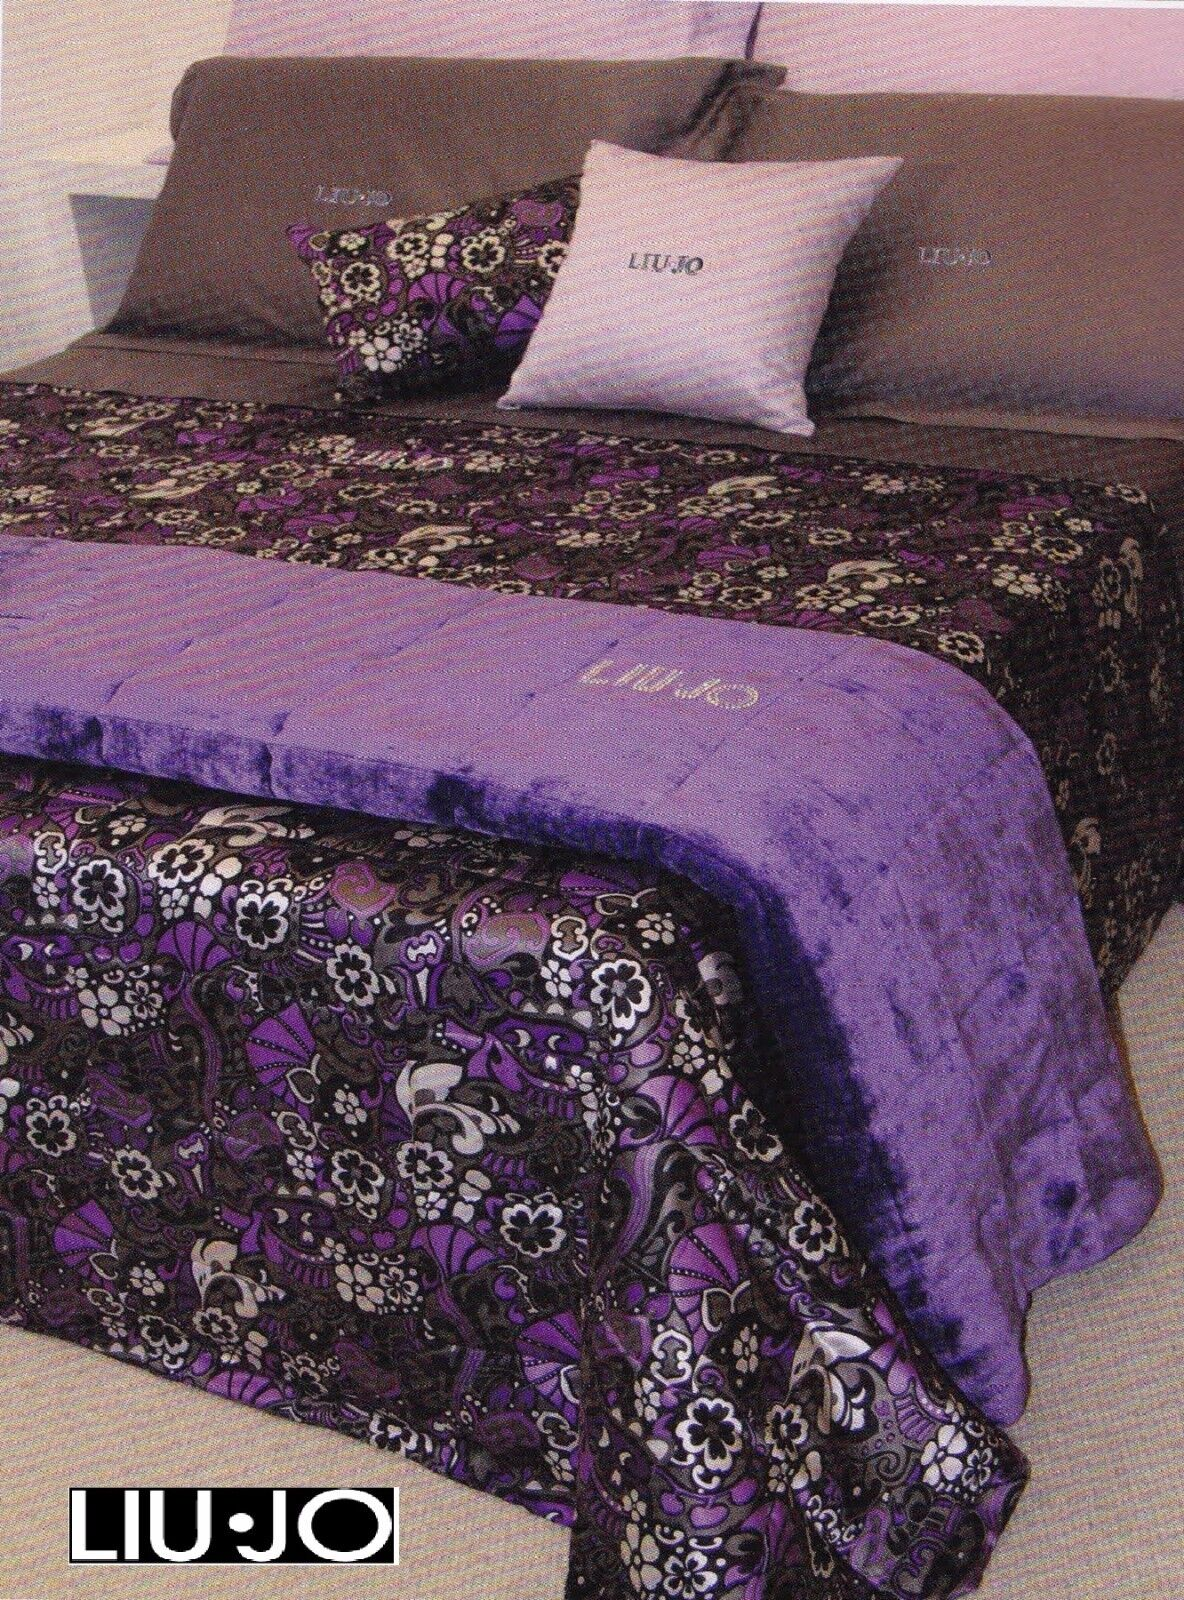 LIU JO. Quilt,Quilted bedspread LAMBRO from 0.22 pounds square meters Double,